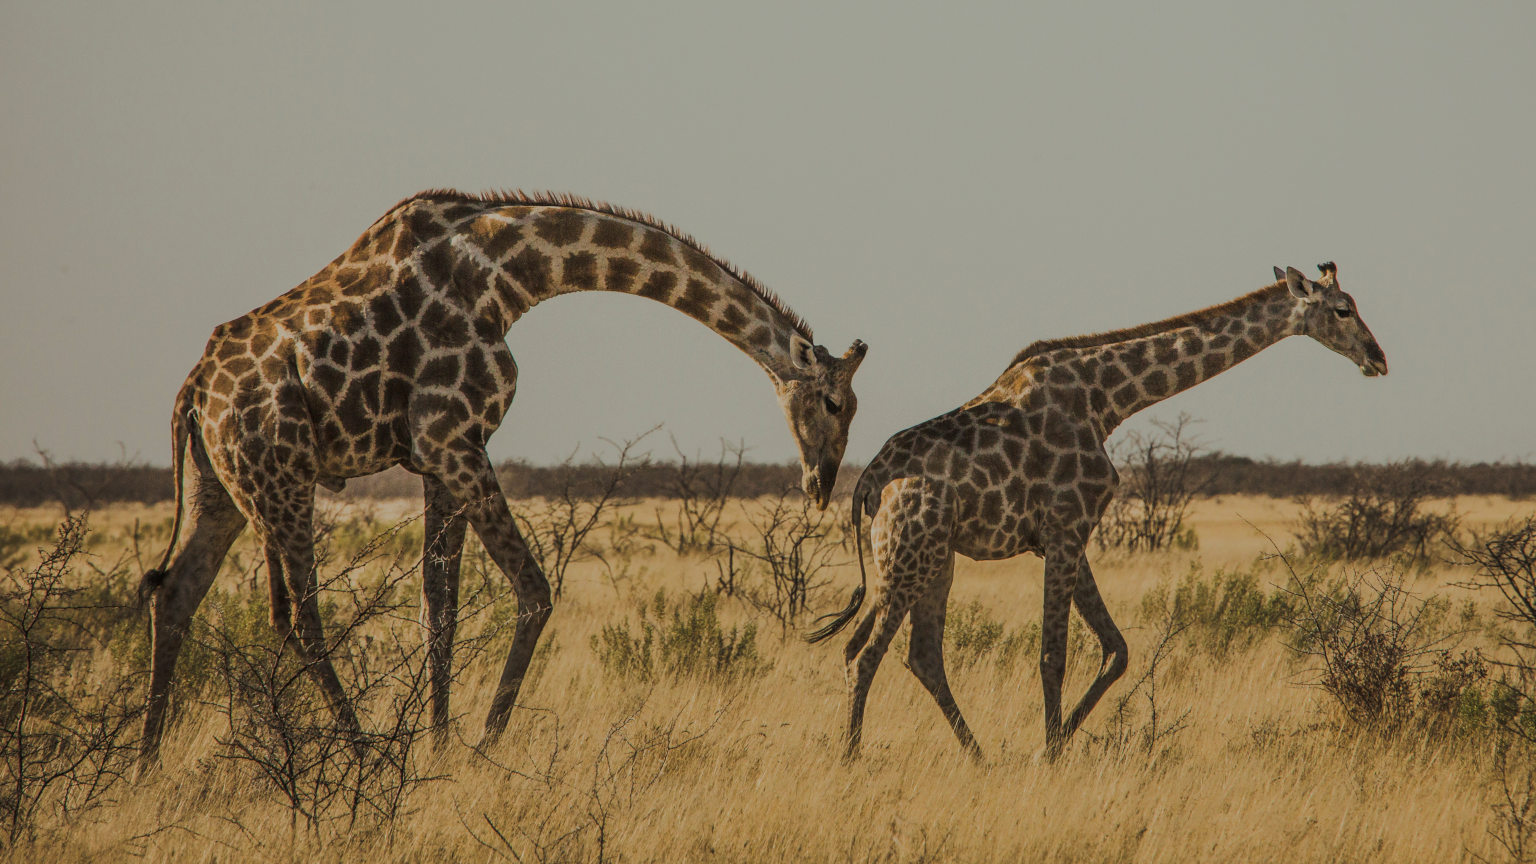 Namibia-Etosha-National-Park-Wildlife-Safari-Drive-Giraffes-Oana-Dragan